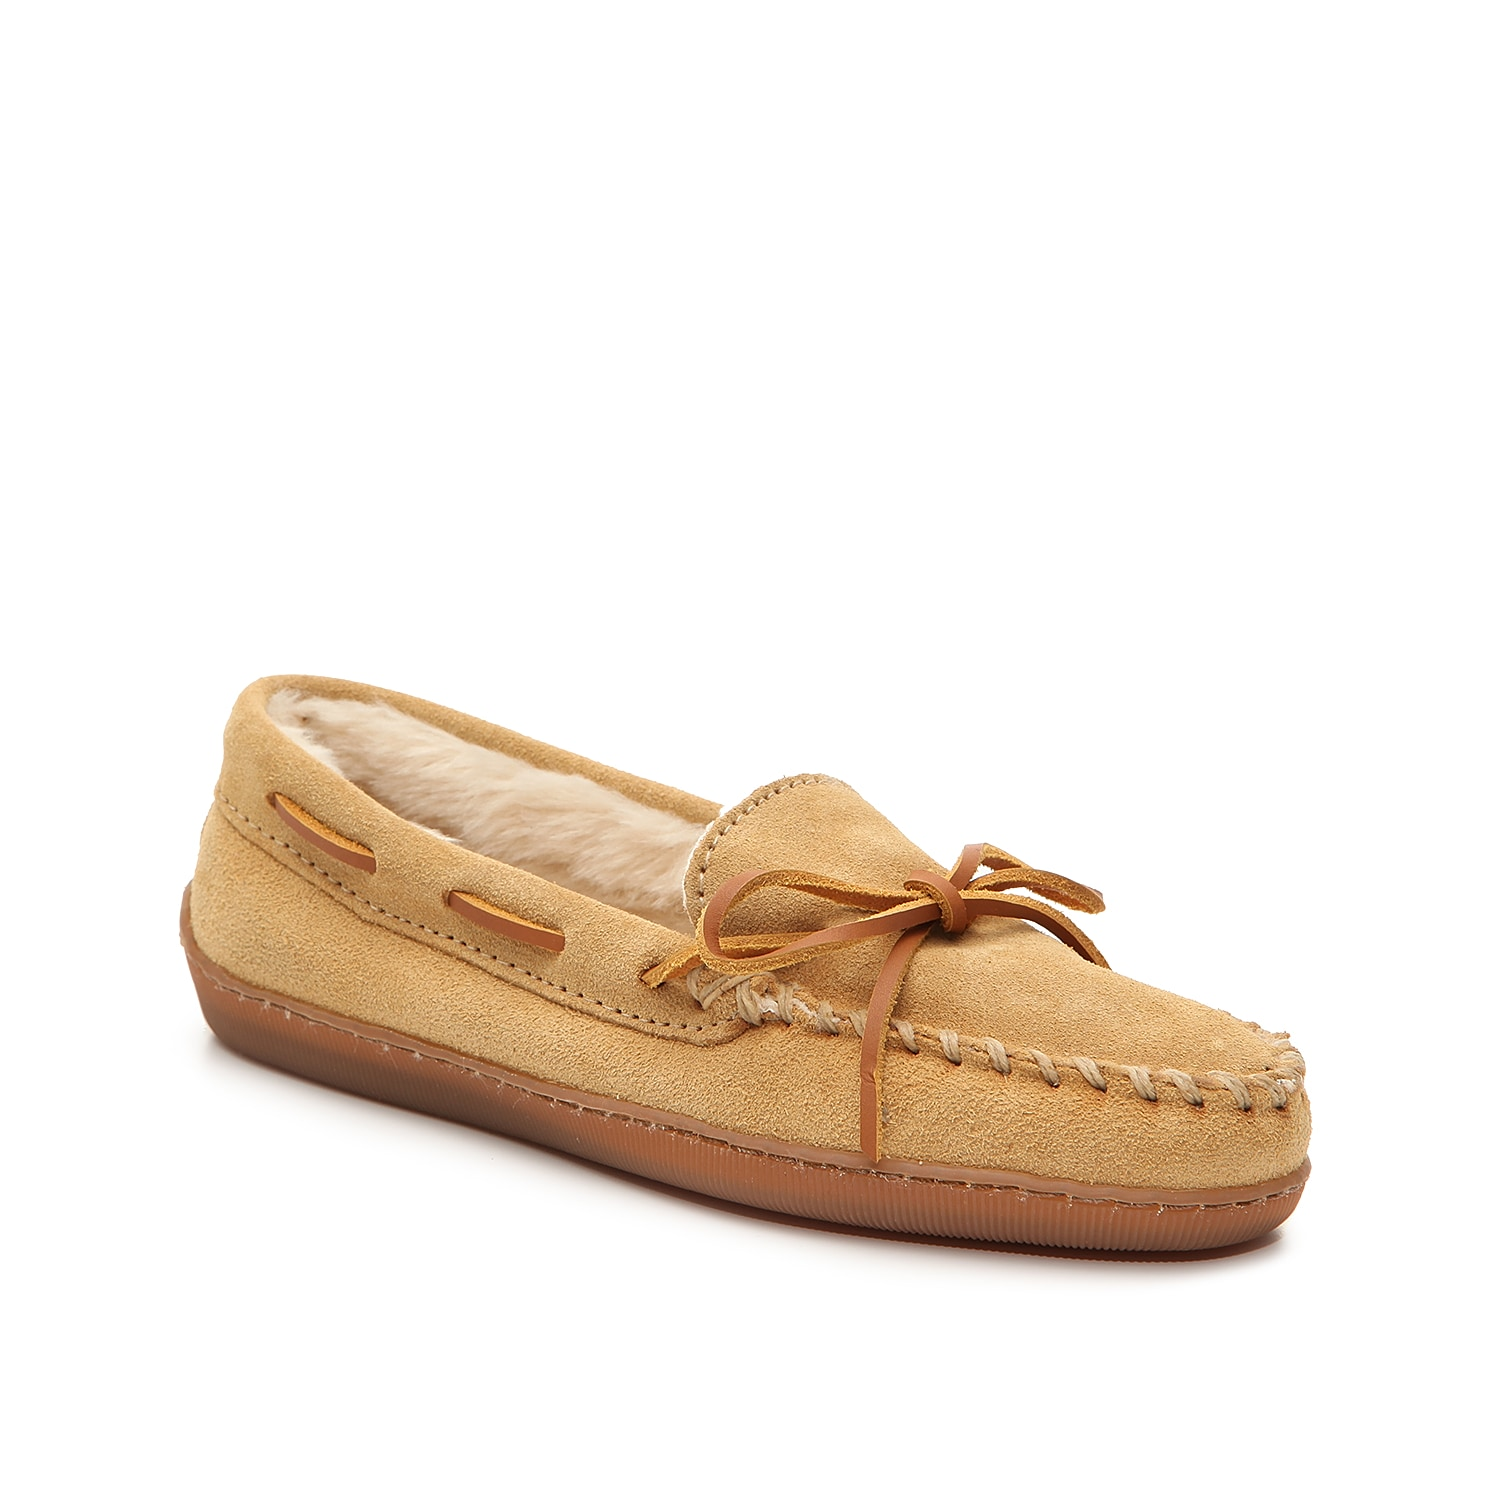 Add a versatile touch to lounge-ready looks with the Pile Lined Hard slipper from Minnetonka. These suede moccasins feature a warm faux fur lining and a durable rubber sole for indoor and outdoor use.